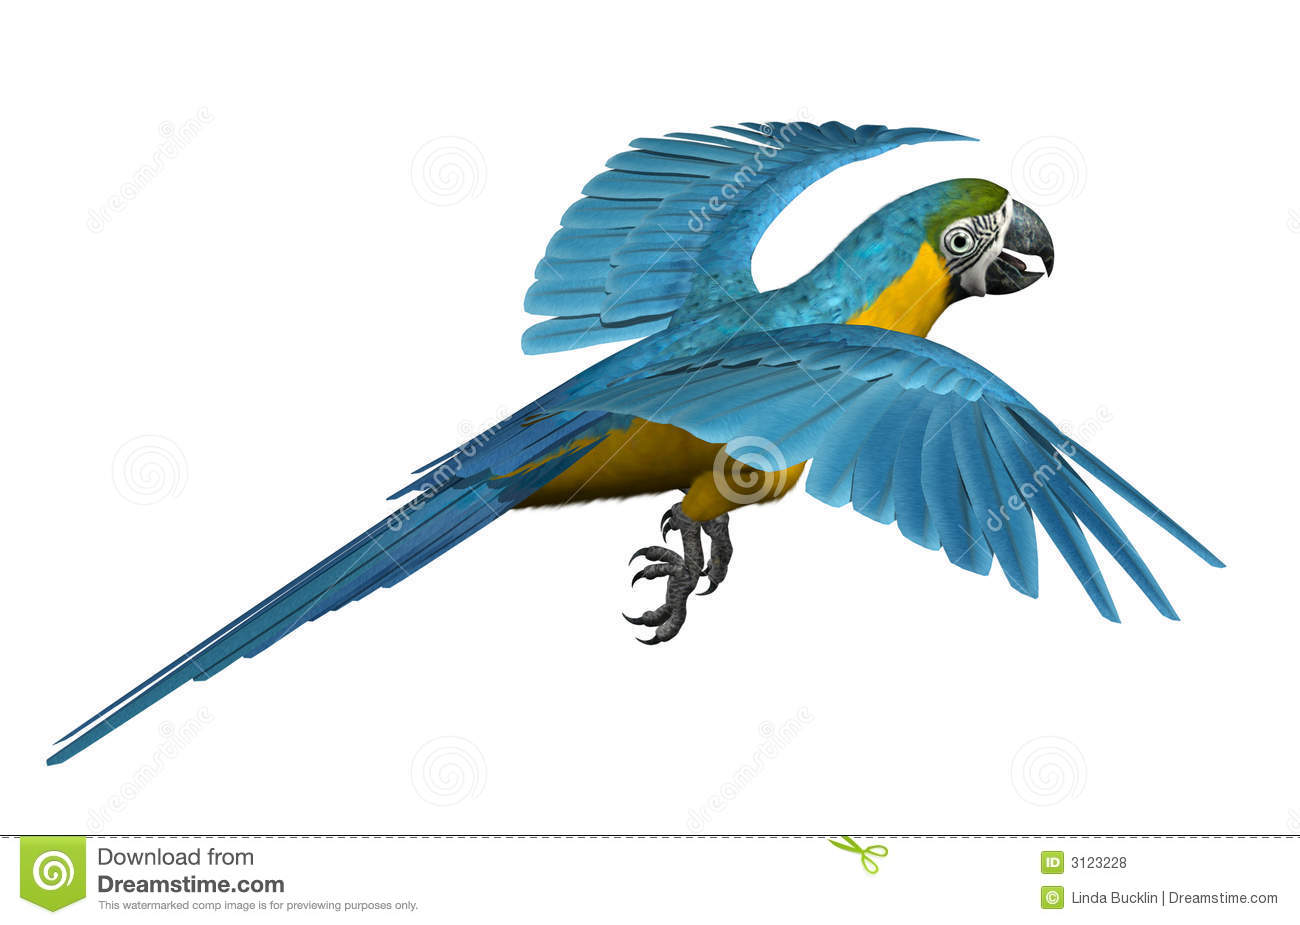 Blue and gold macaw icon clipart.